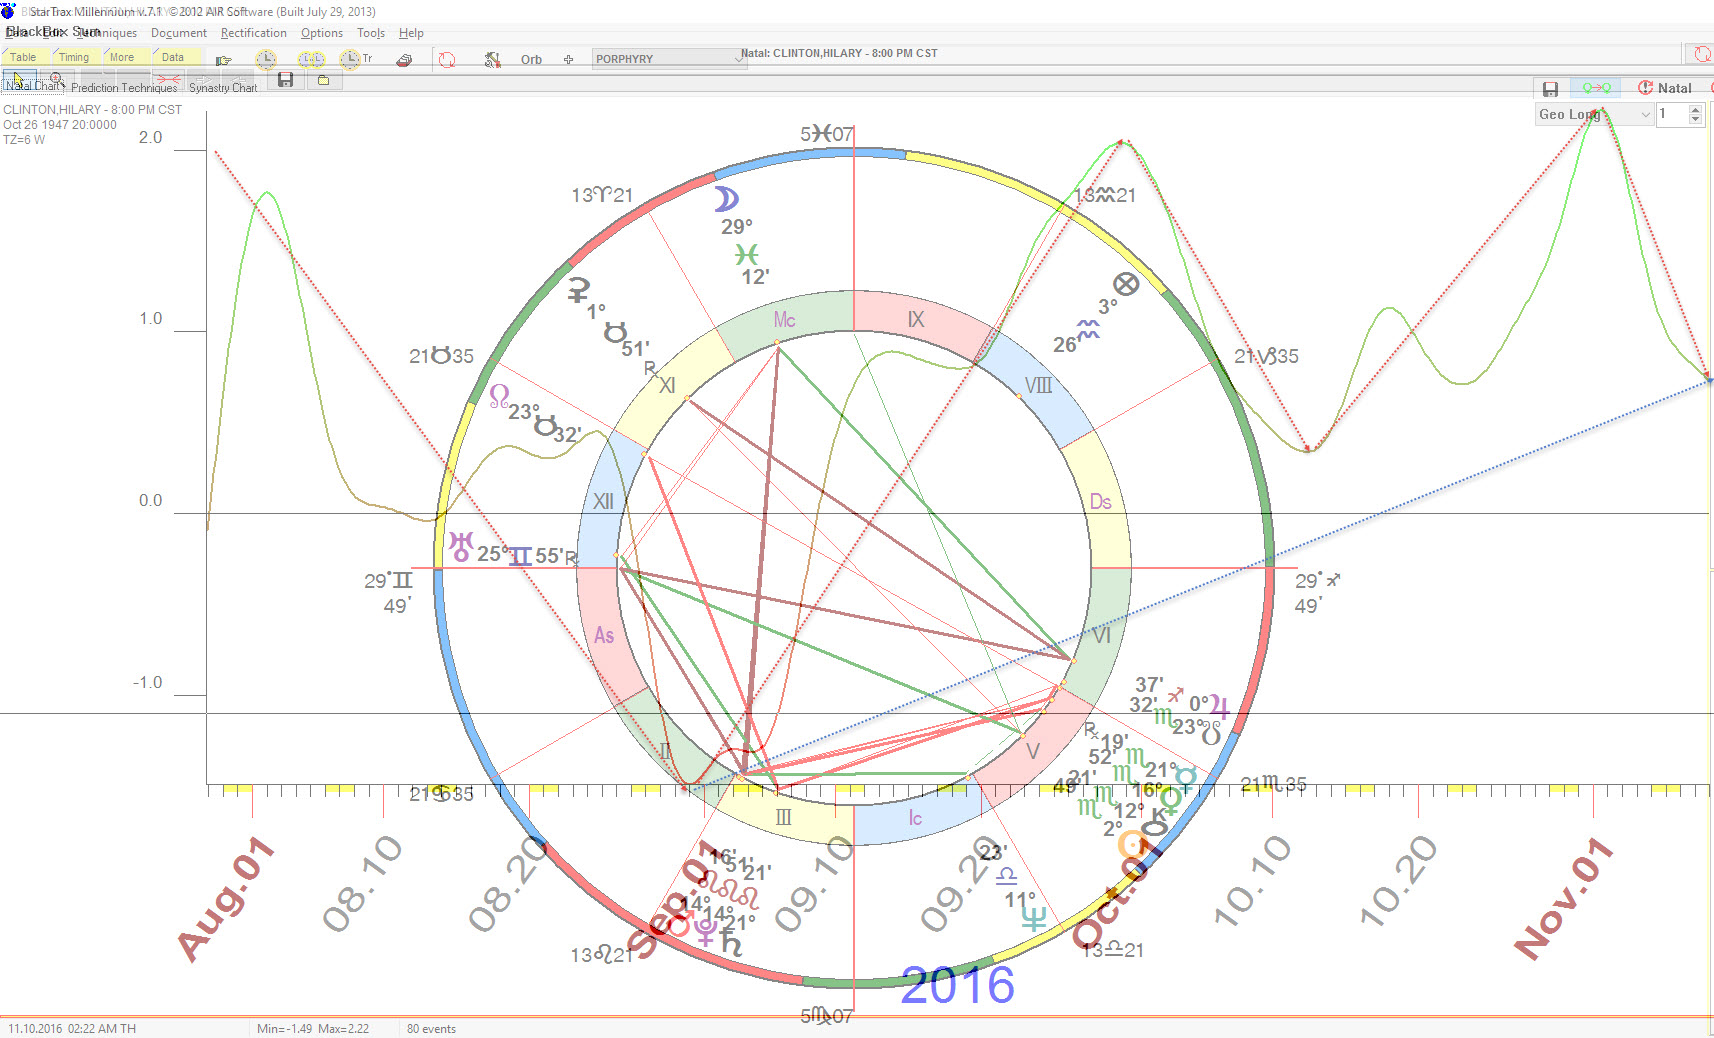 Astrology and politics 2016 us presidential general election blackbox career forecast for hillary clinton 800pm birth time copyright william nvjuhfo Choice Image